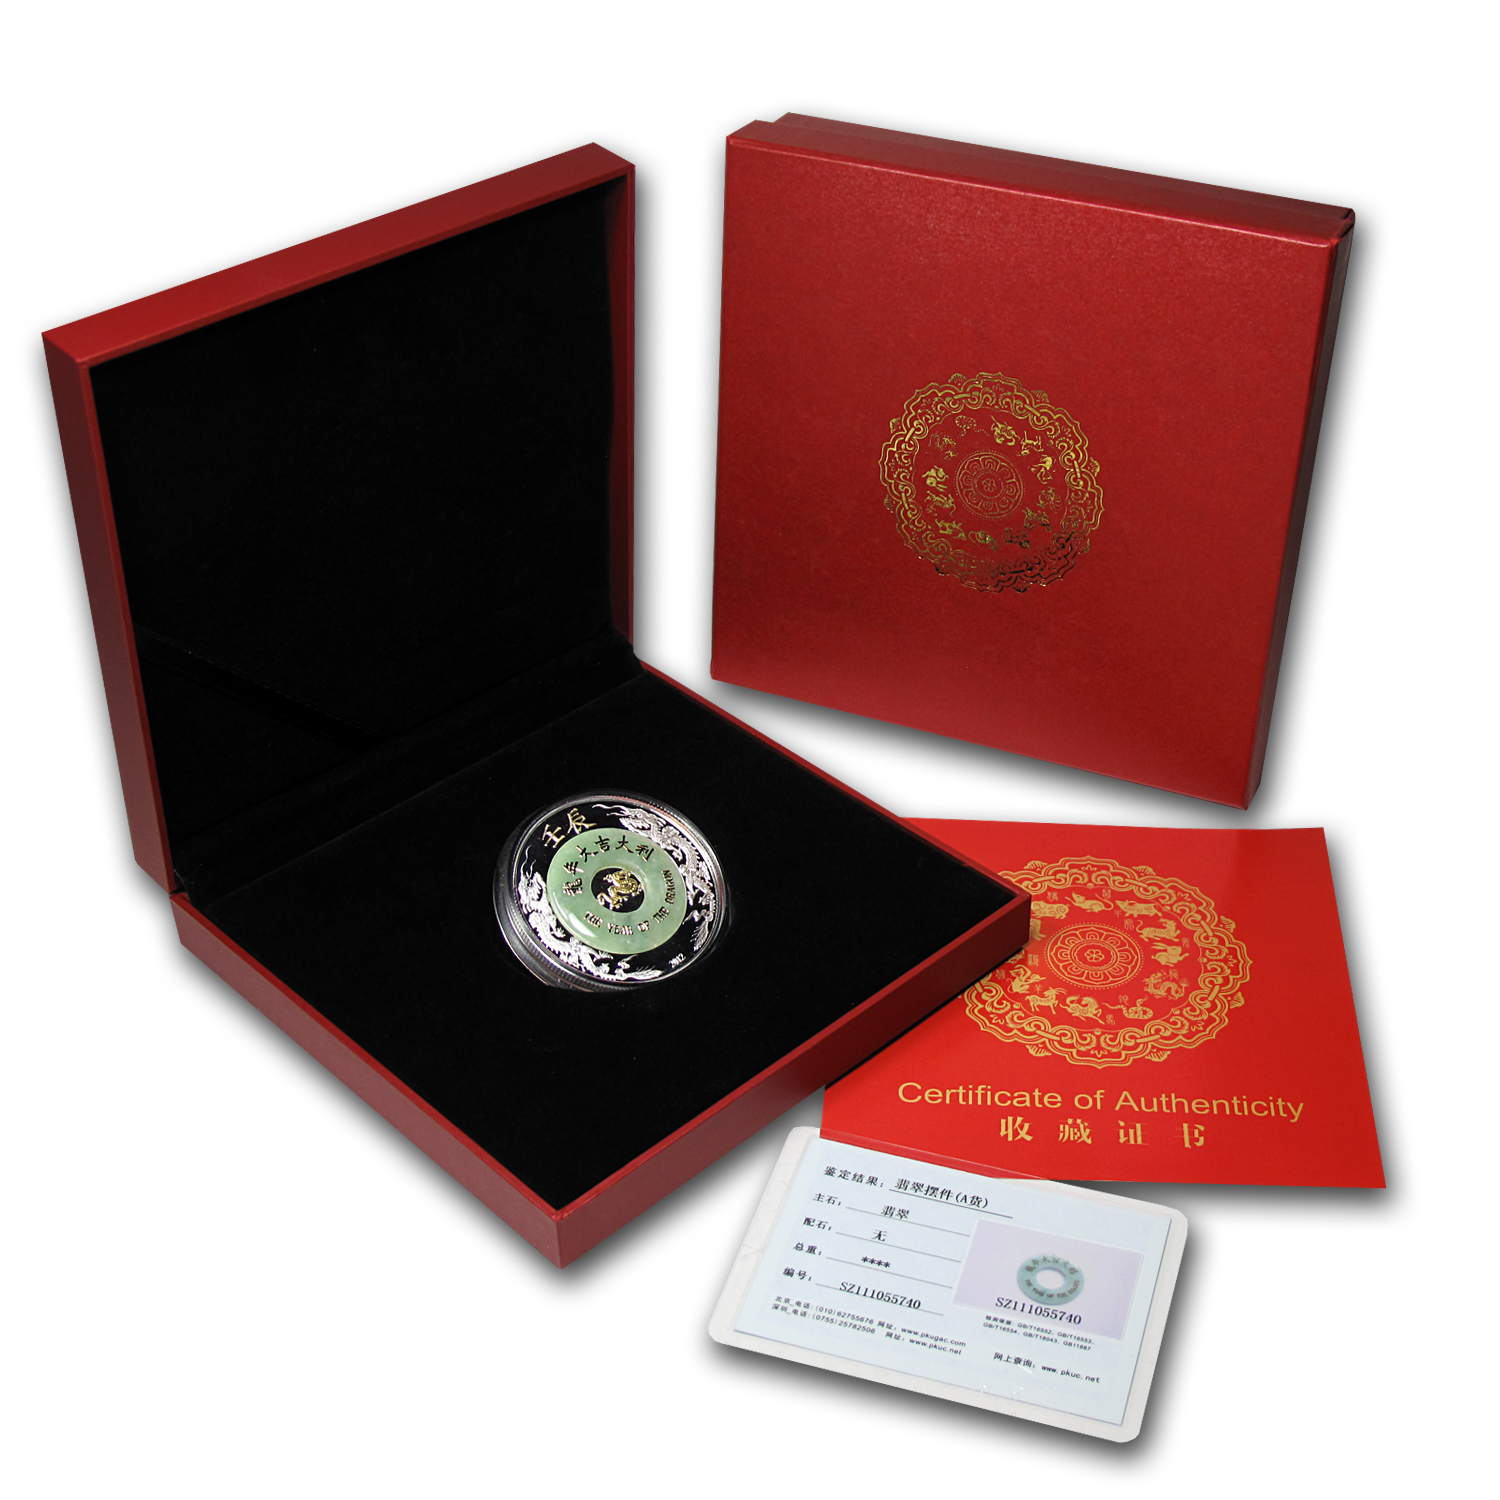 2012 Laos 2 oz Silver & Jade Year of the Dragon Proof